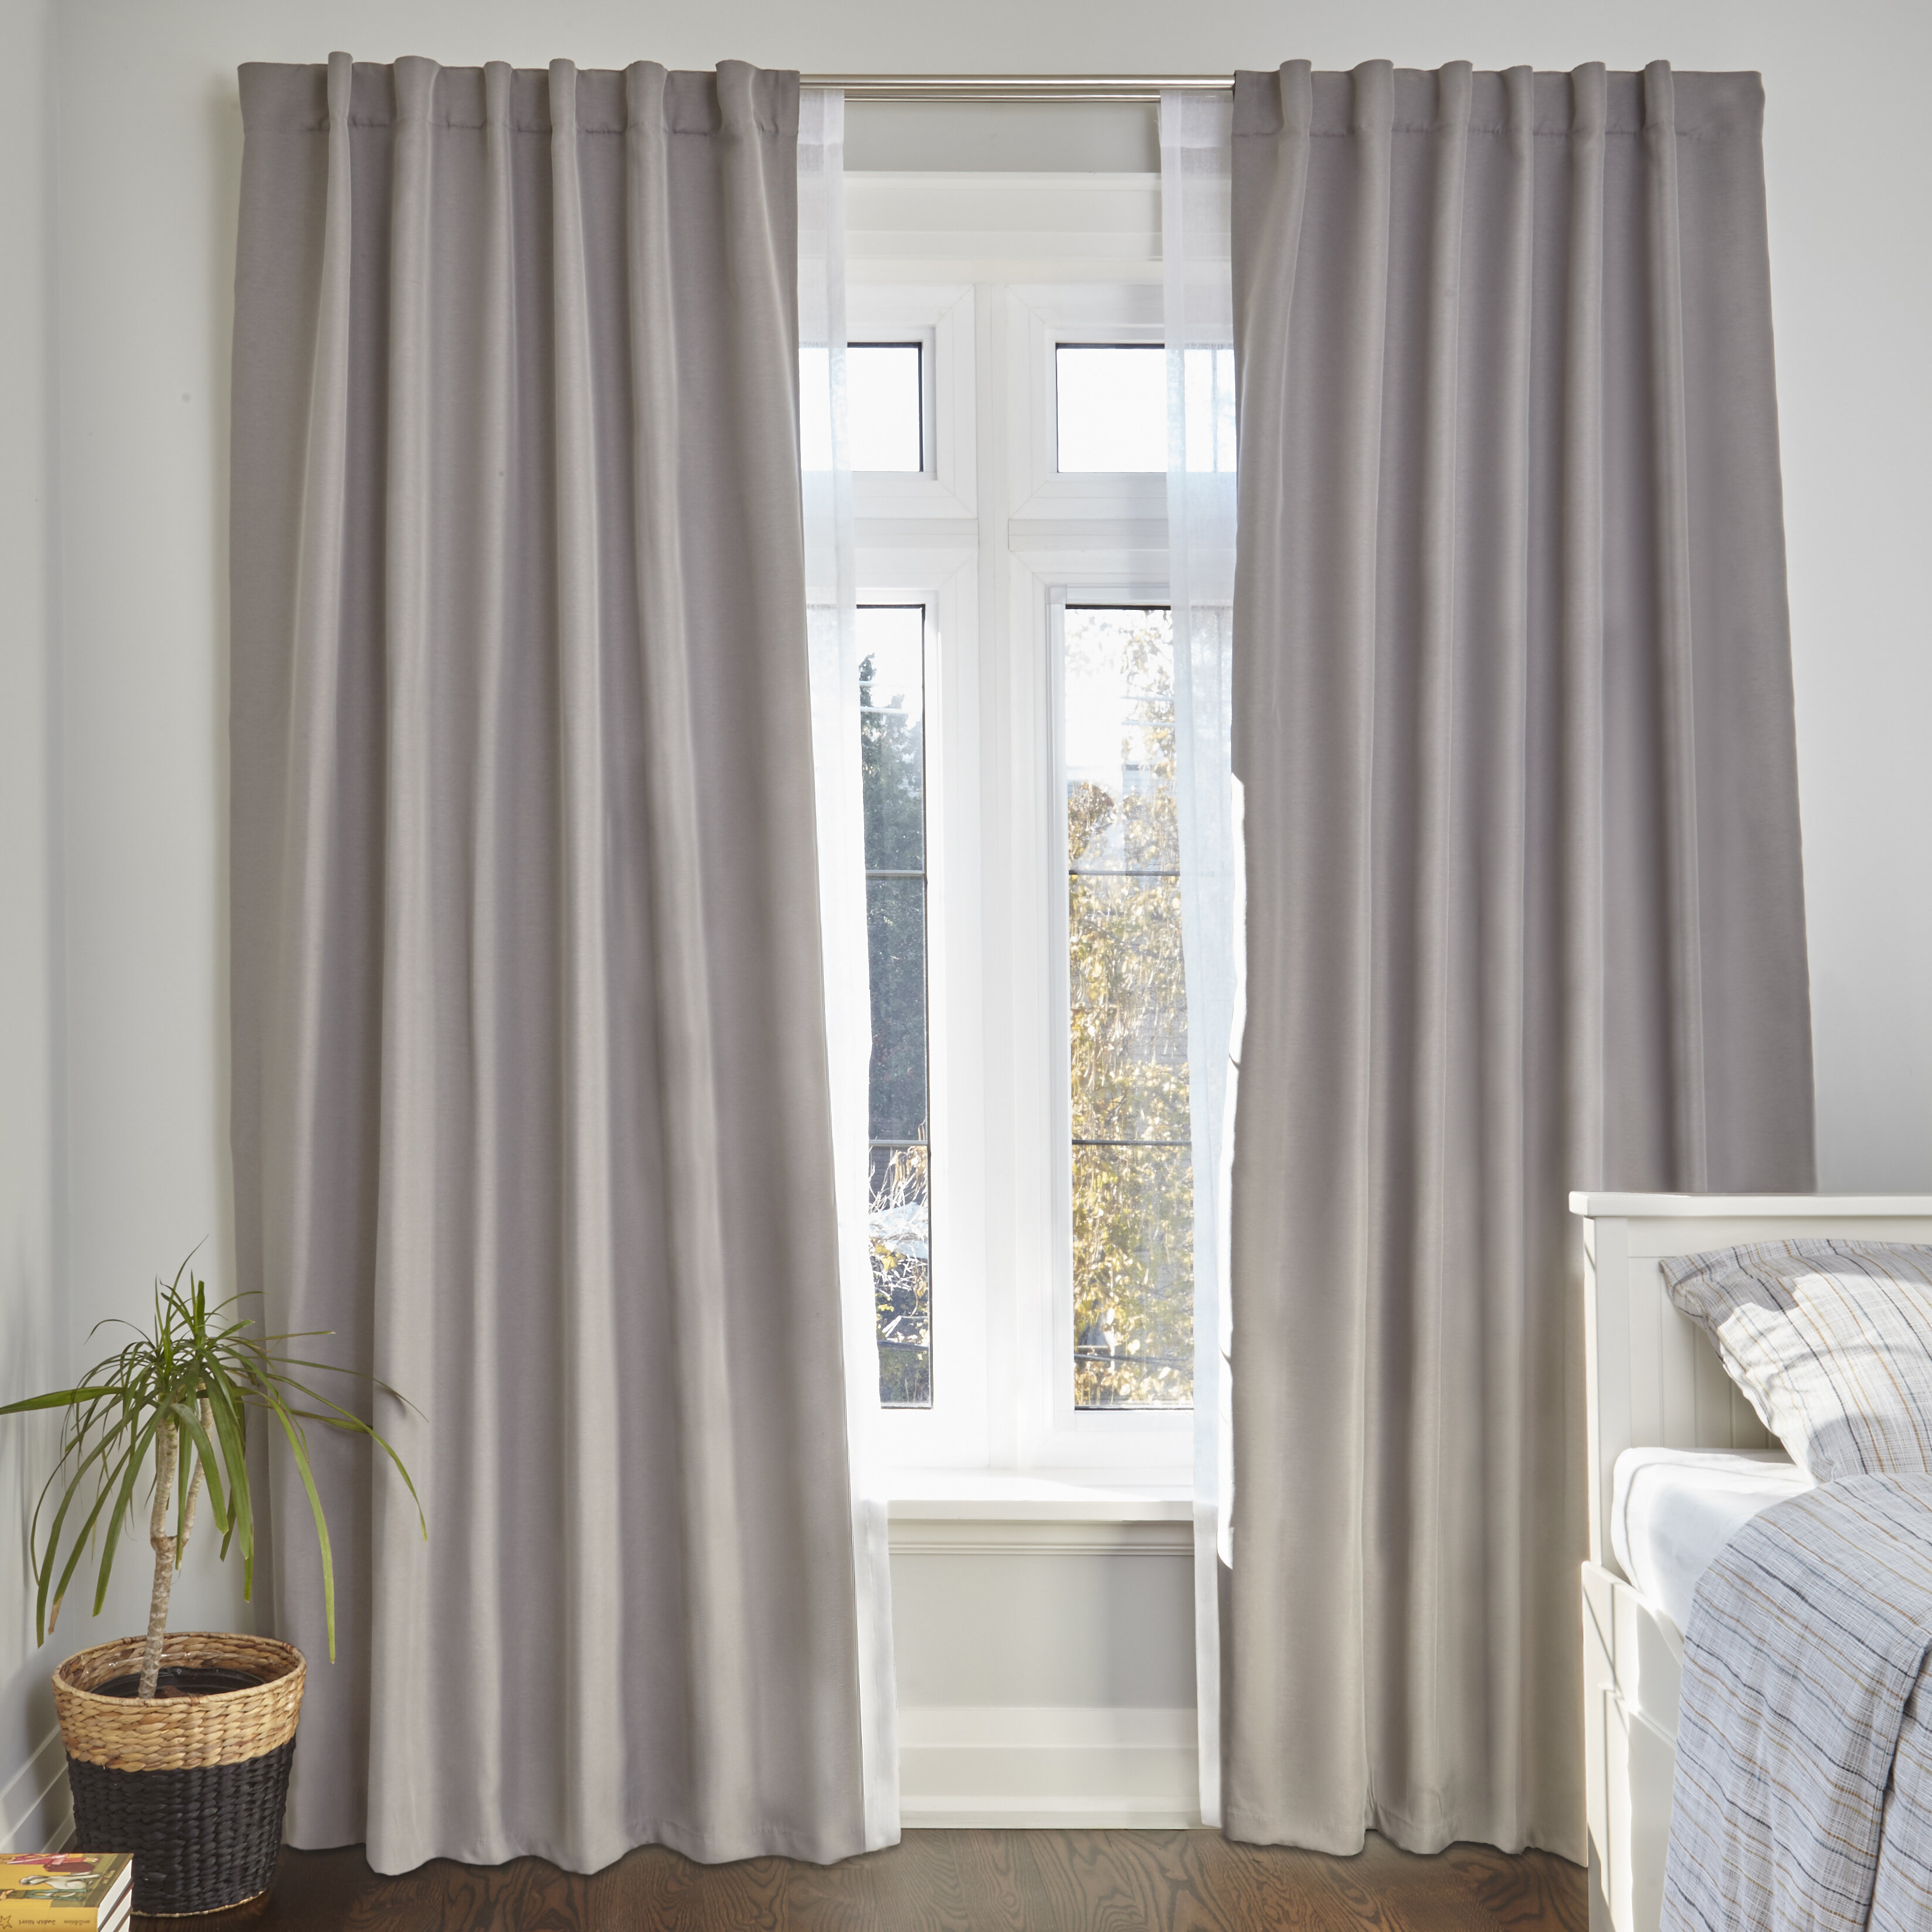 nickel inch desyne magnolia com dp home to rod amazon satin curtain window curtains set kitchen